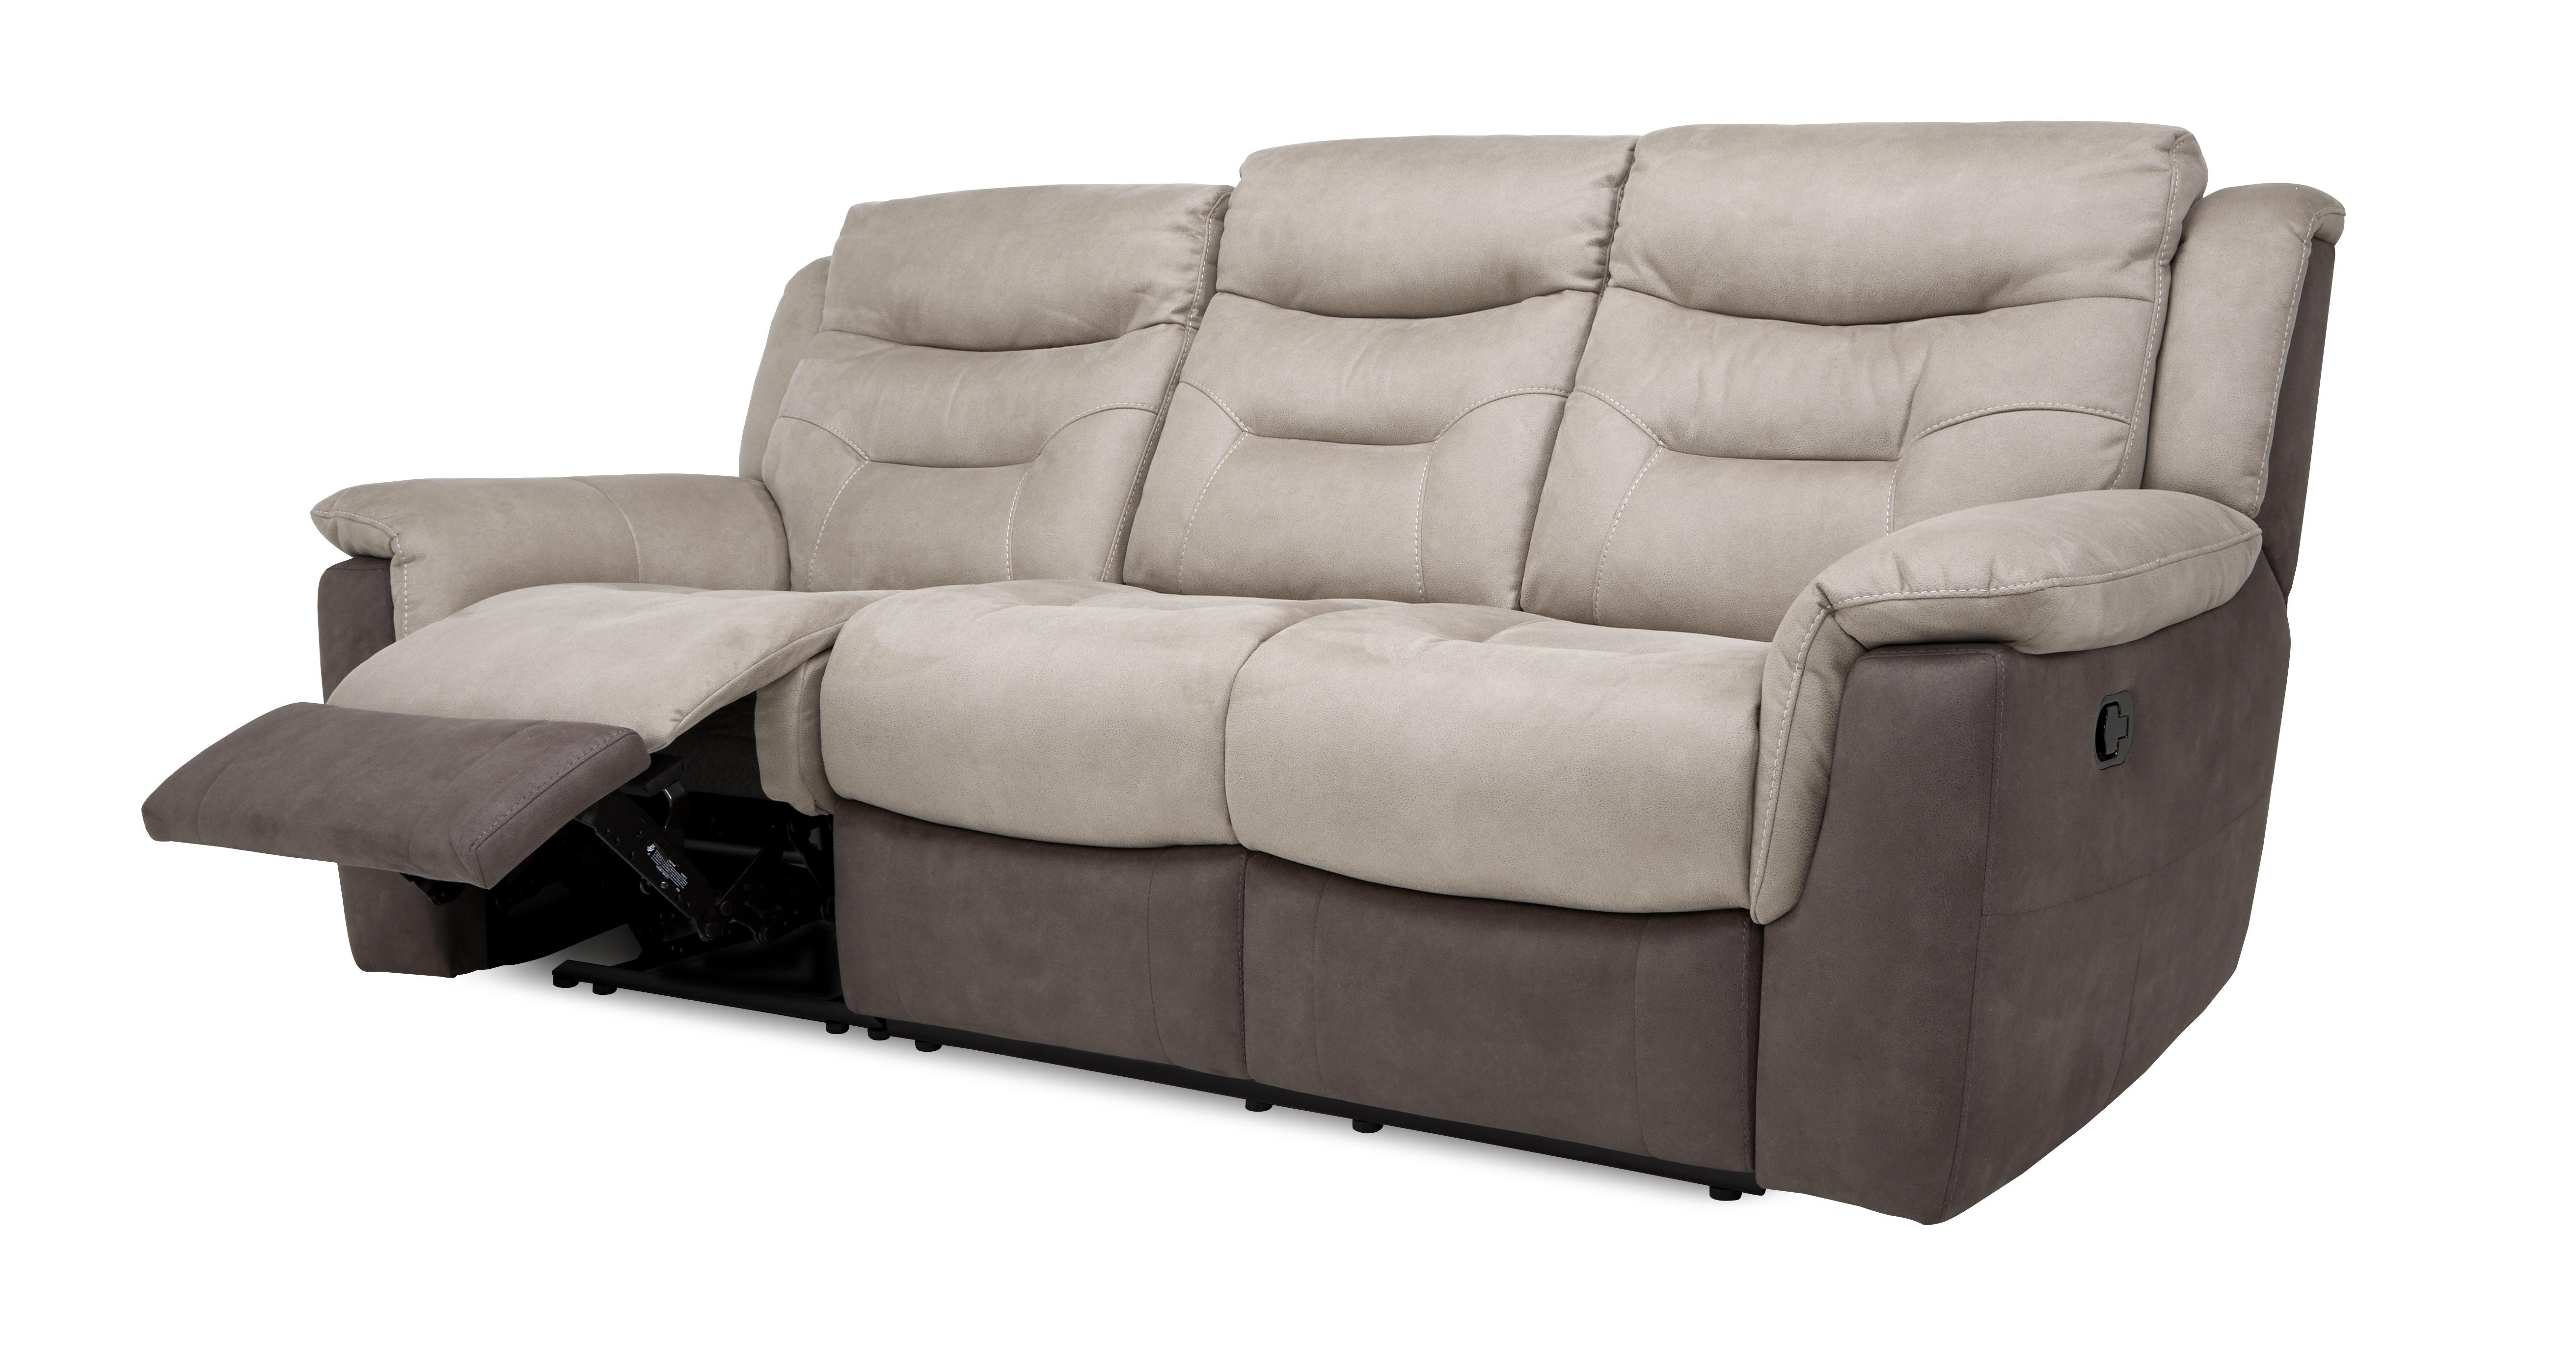 2 seater leather sofas at dfs one sofa bed uk recliner energywarden